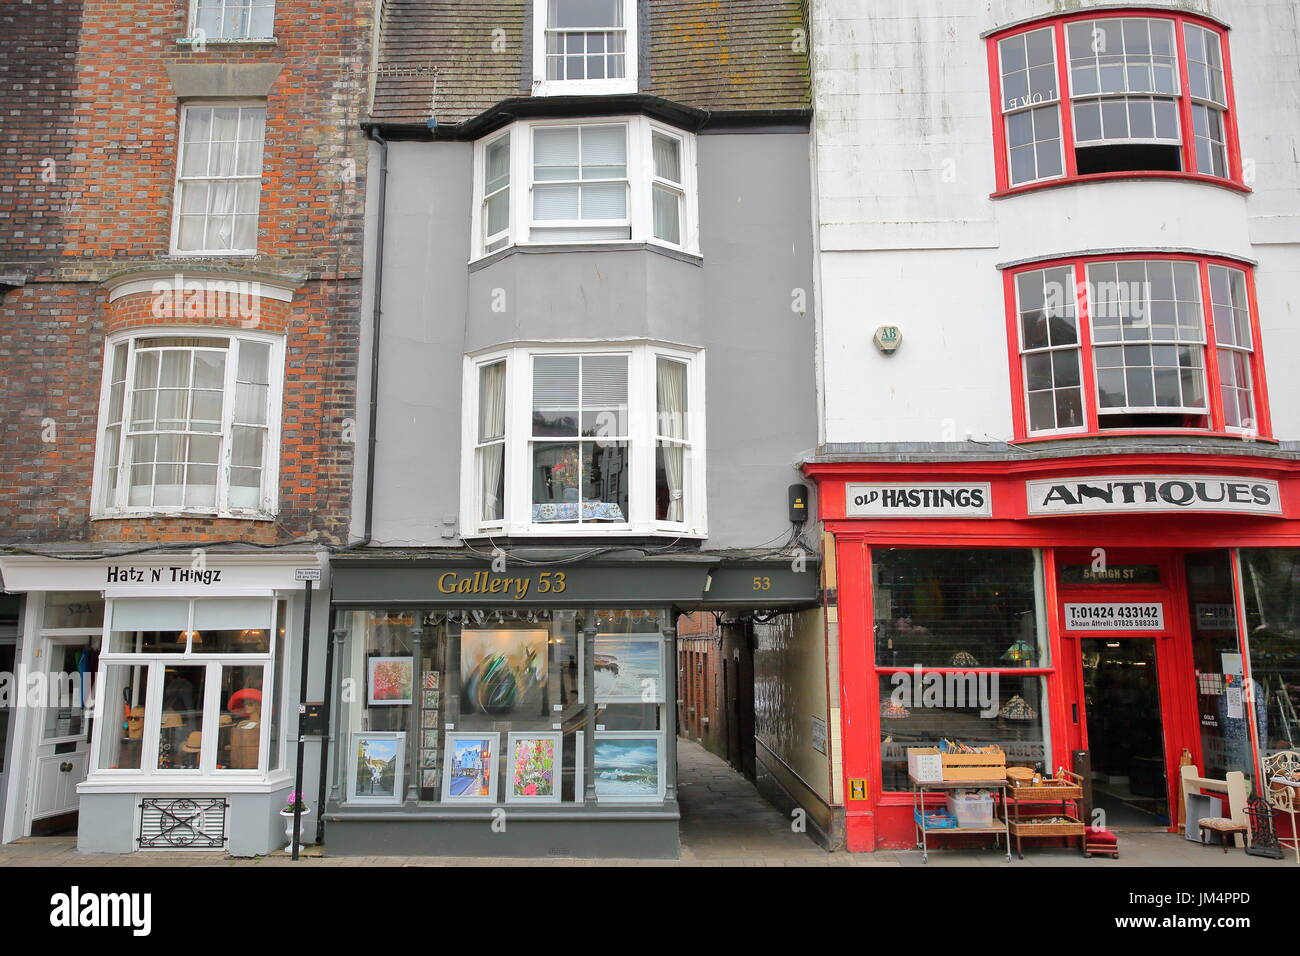 HASTINGS, UK - JULY 22, 2017: Colorful shops in High Street, Hastings Old Town - Stock Image